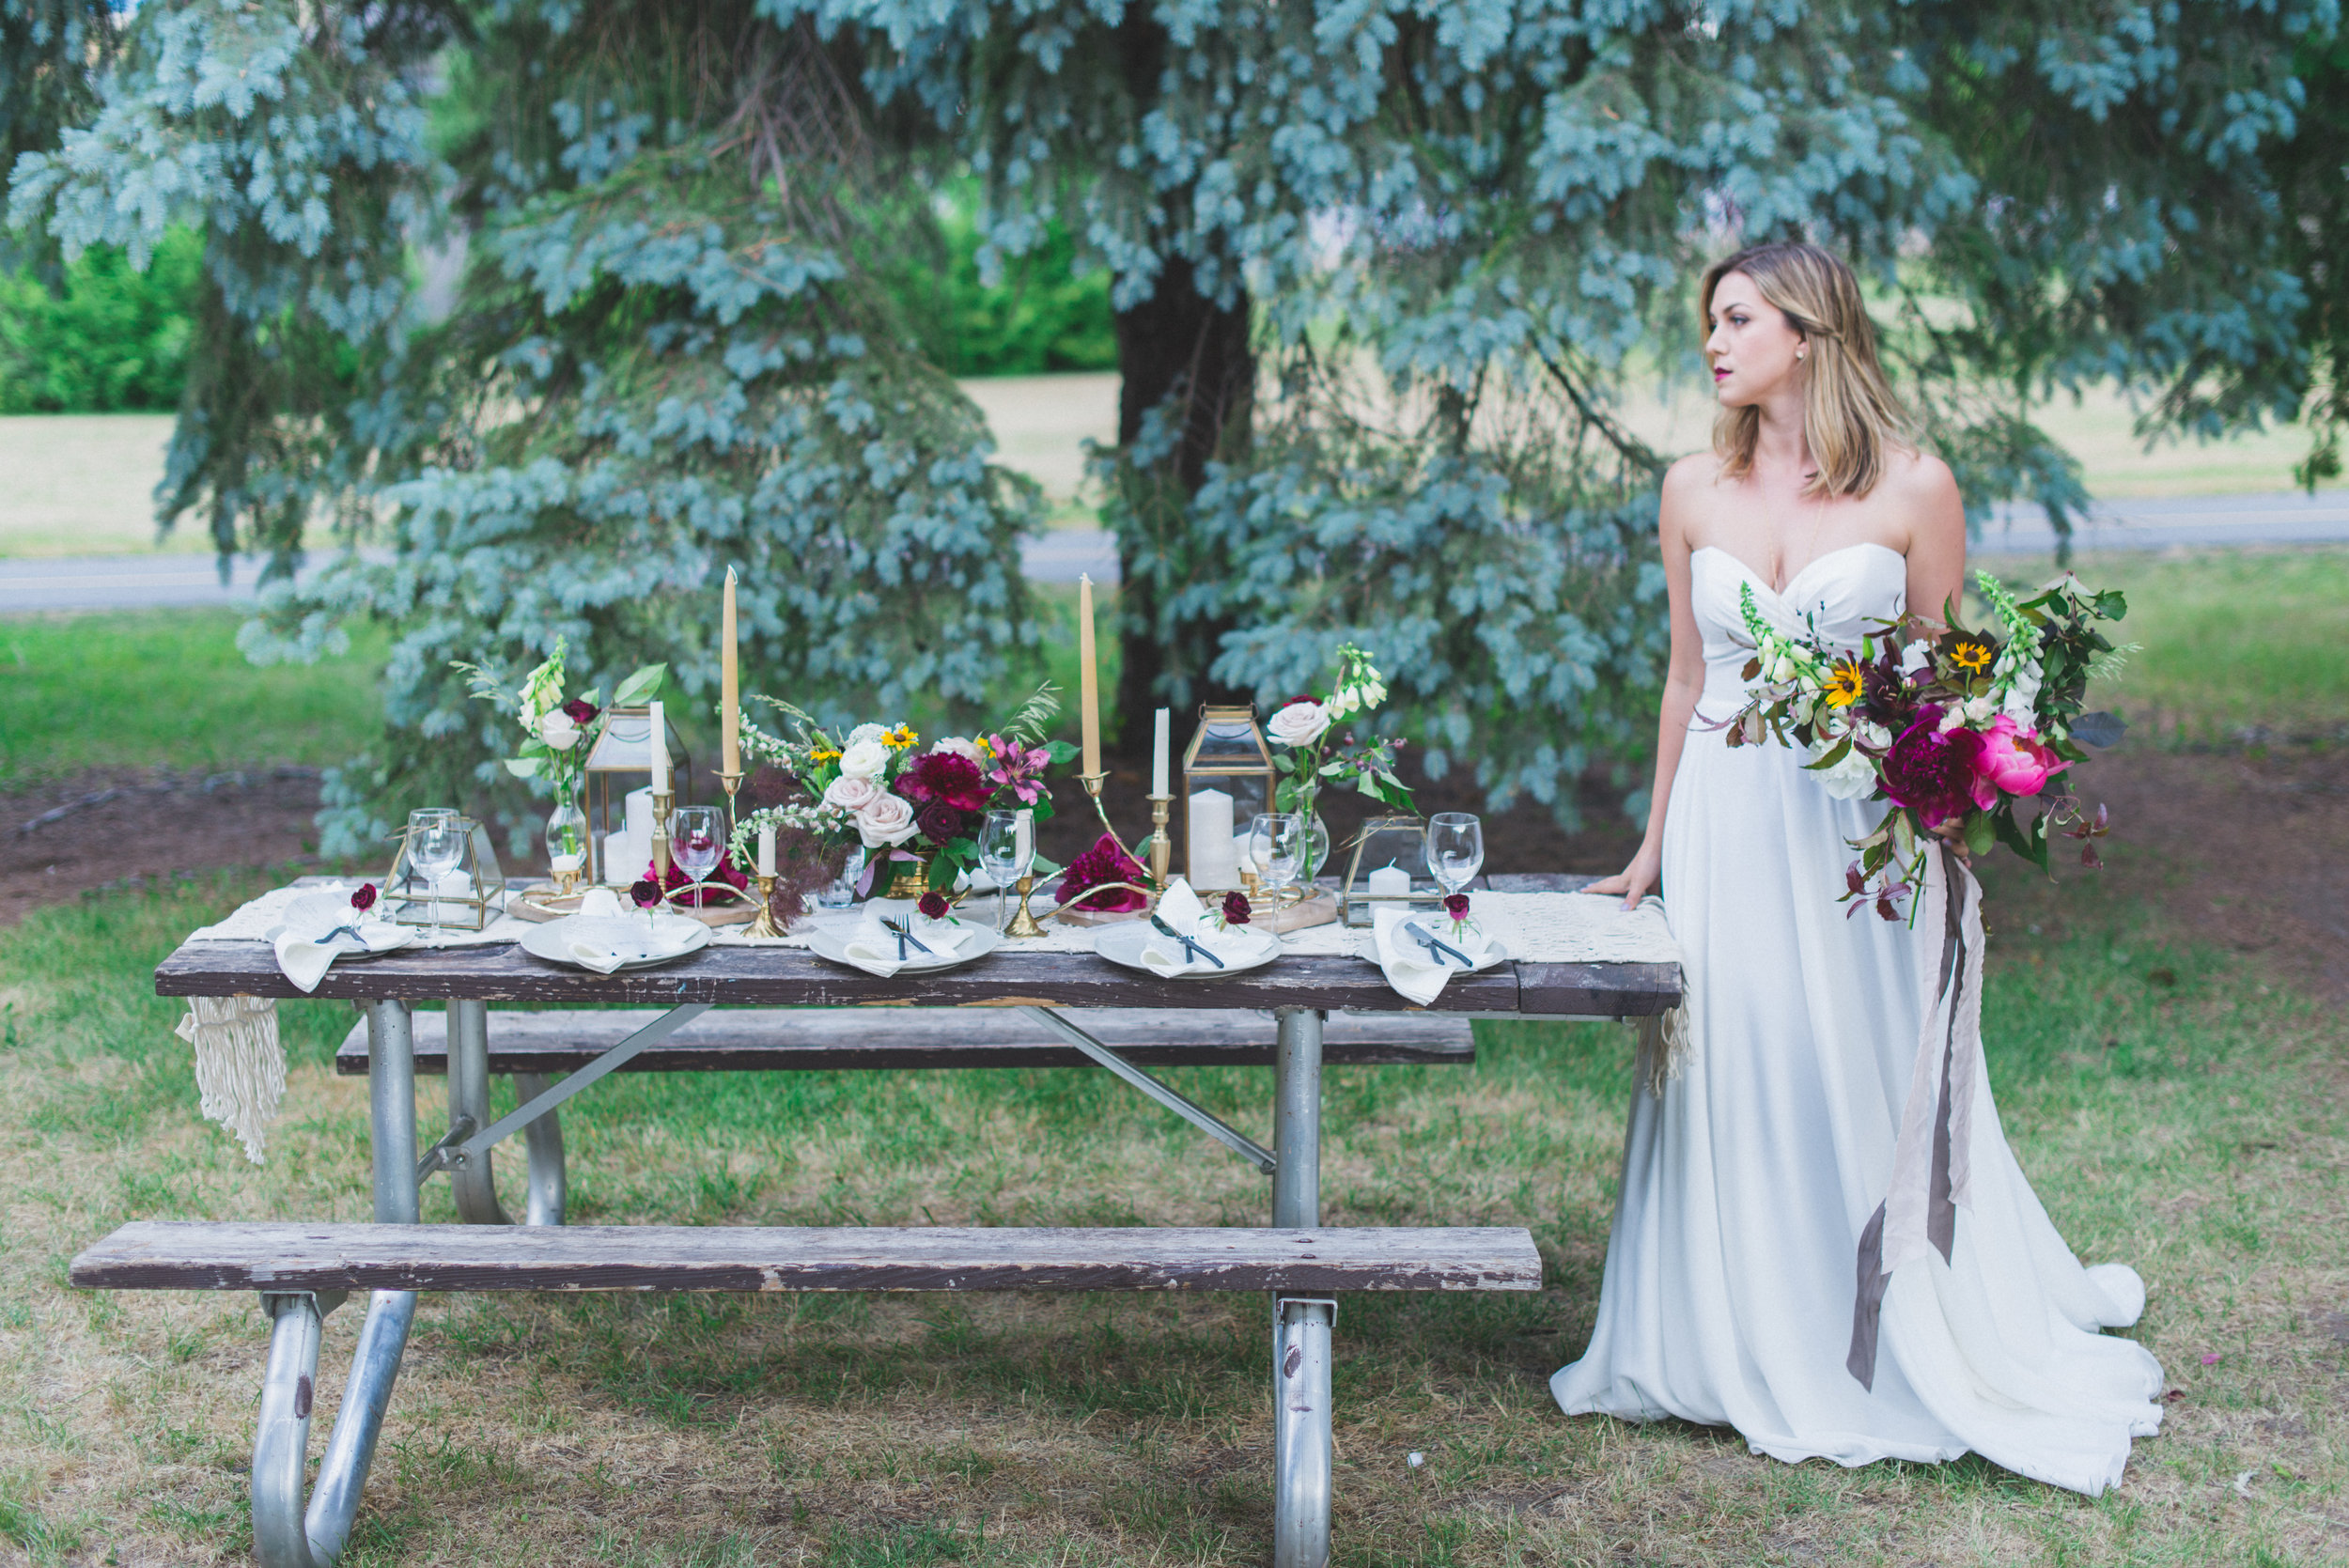 Styling: TOAST Events Photography: Laura Kelly Photography  Makeup: One Fine Beauty Dress: The Handmade Bride  Florals: Presh  Decor: Amy & Jen Decor